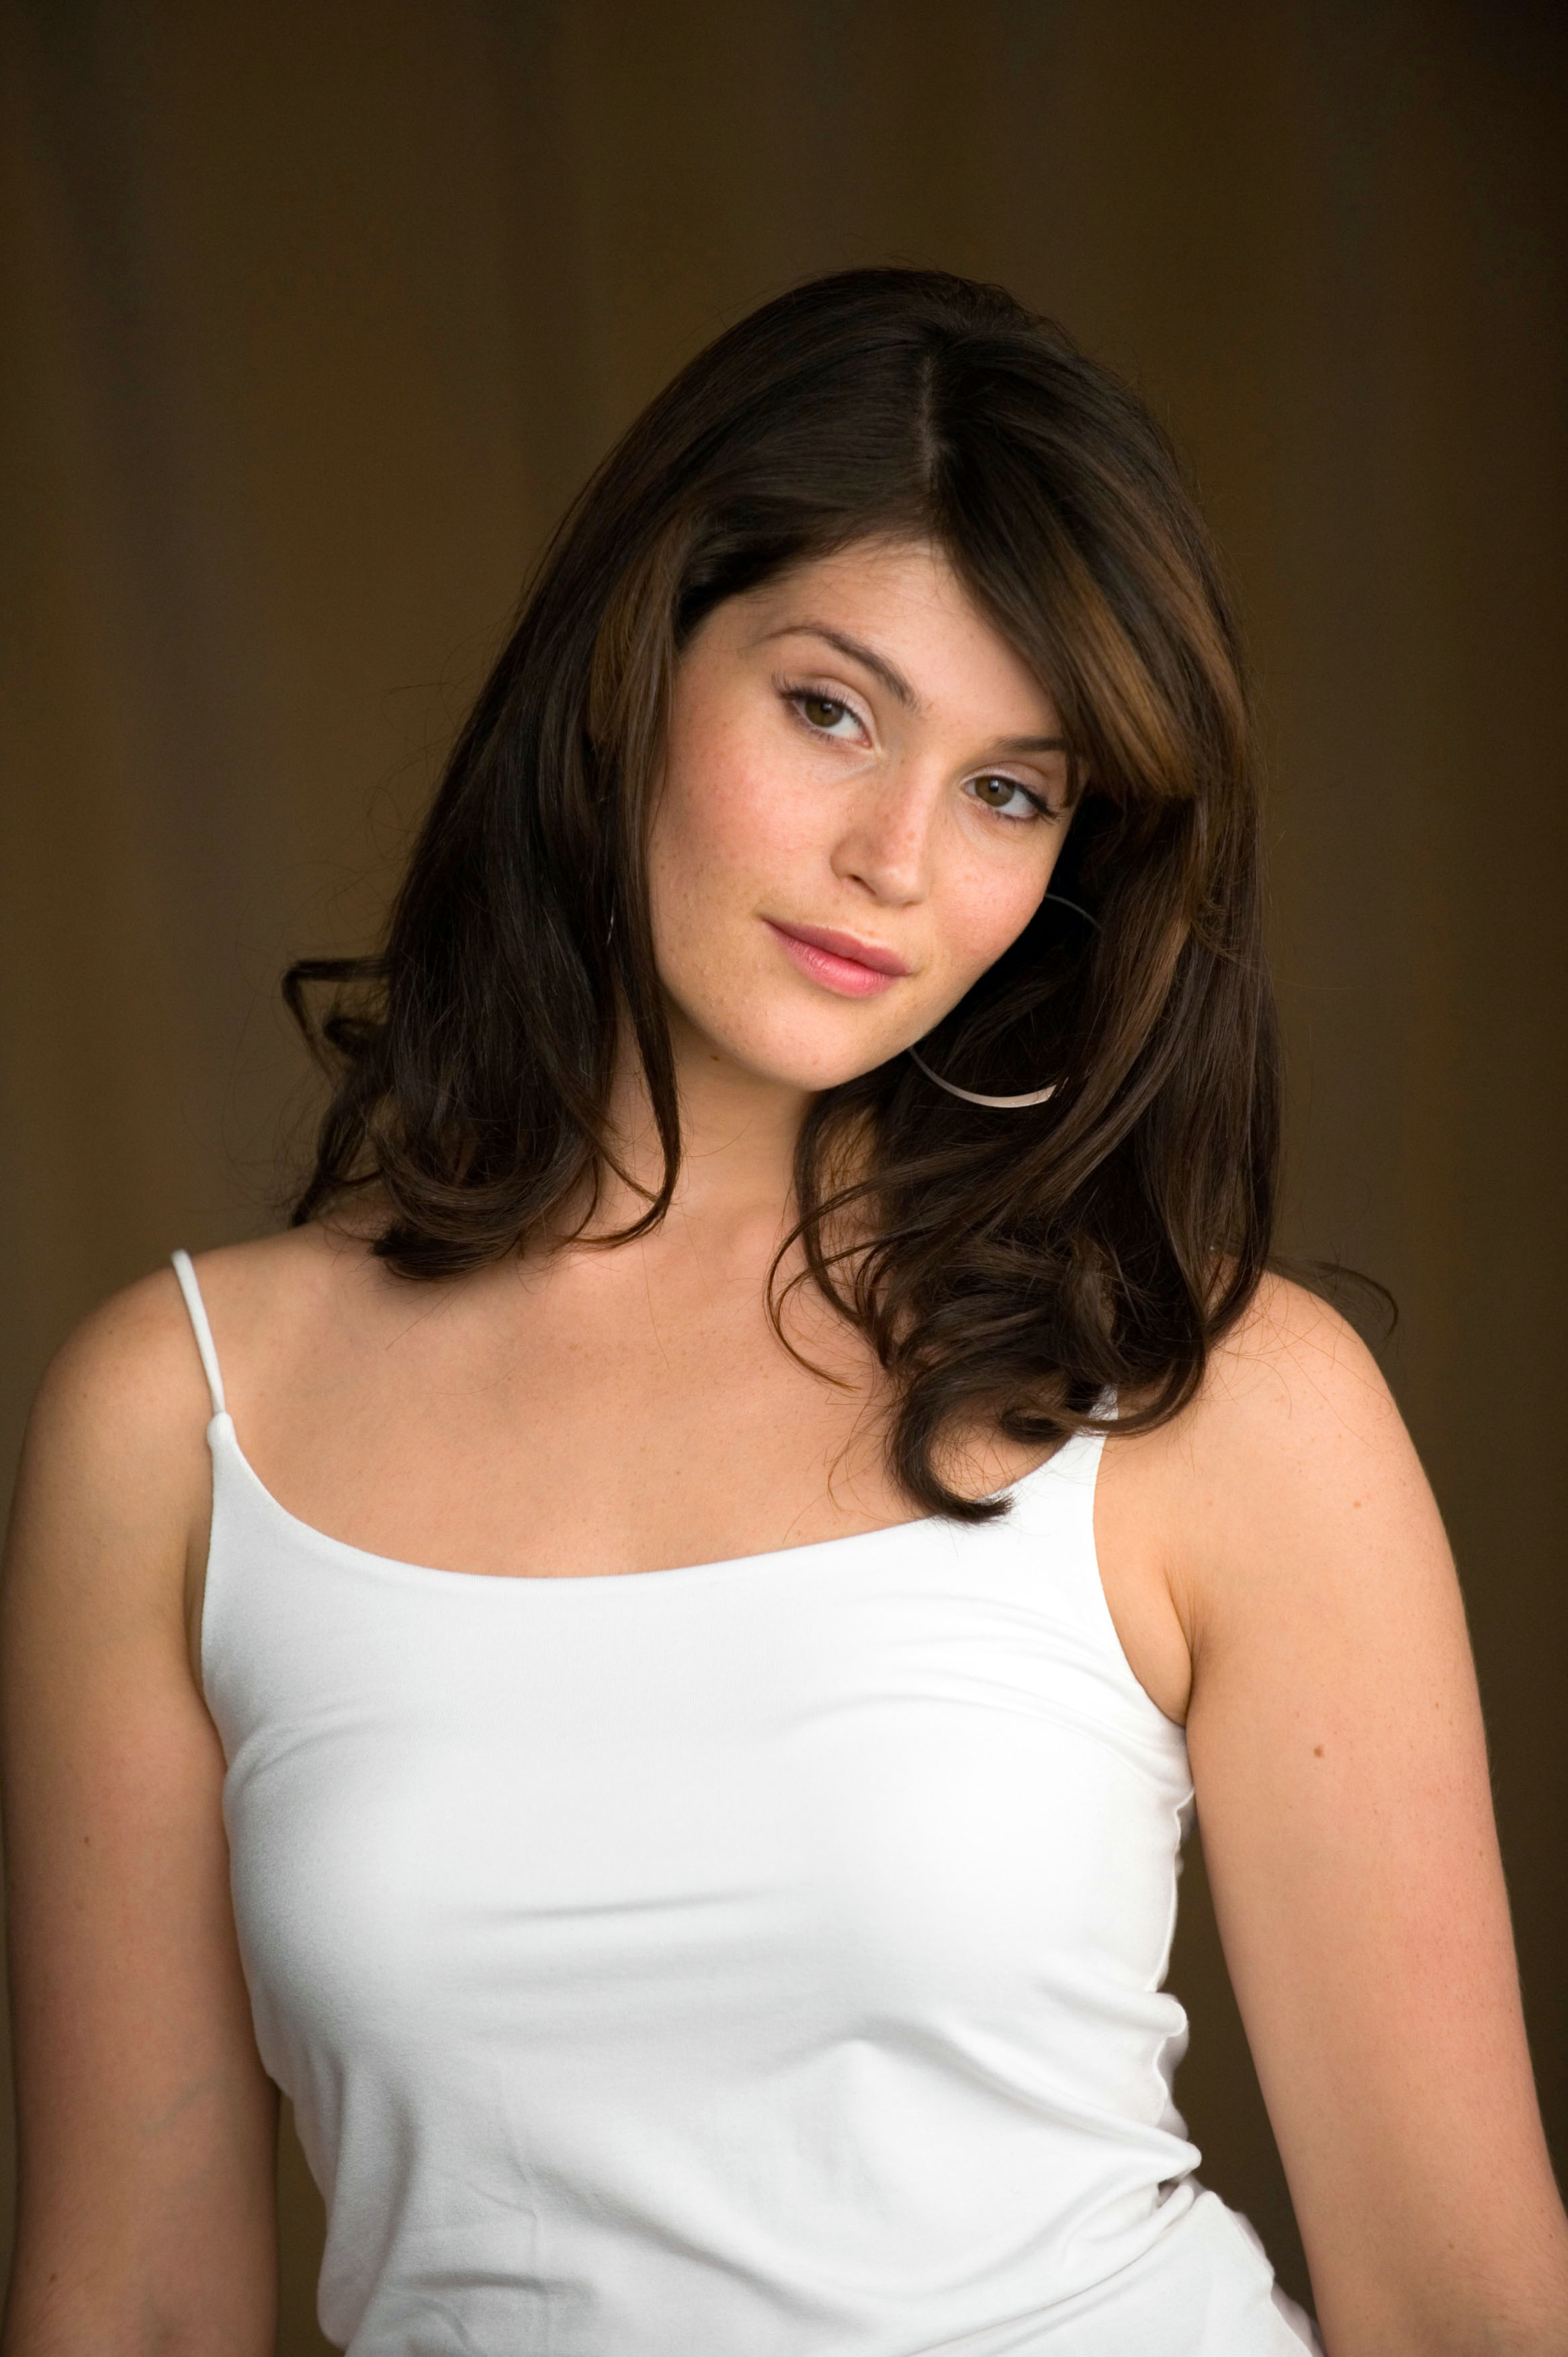 gemma arterton kimdirgemma arterton 2016, gemma arterton 2017, gemma arterton wiki, gemma arterton instagram, gemma arterton tumblr gif, gemma arterton movies, gemma arterton james bond, gemma arterton вк, gemma arterton facebook, gemma arterton imdb, gemma arterton 100 streets, gemma arterton fan, gemma arterton кинопоиск, gemma arterton bond, gemma arterton interview, gemma arterton wdw, gemma arterton films, gemma arterton kimdir, gemma arterton hd wallpapers, gemma arterton fashion spot